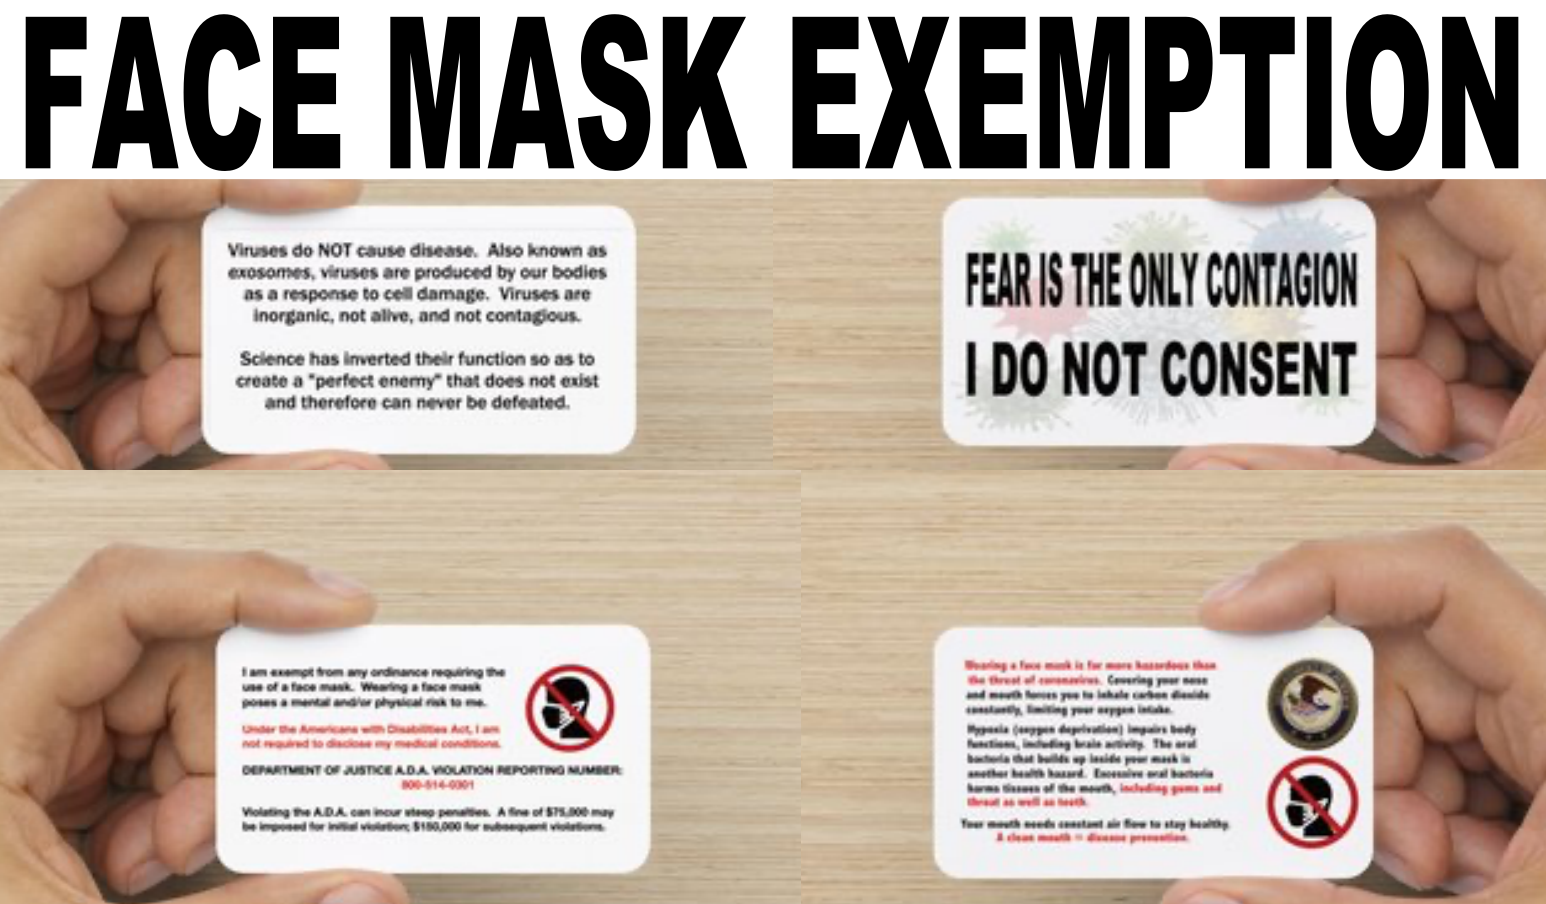 Face Mask Exemption